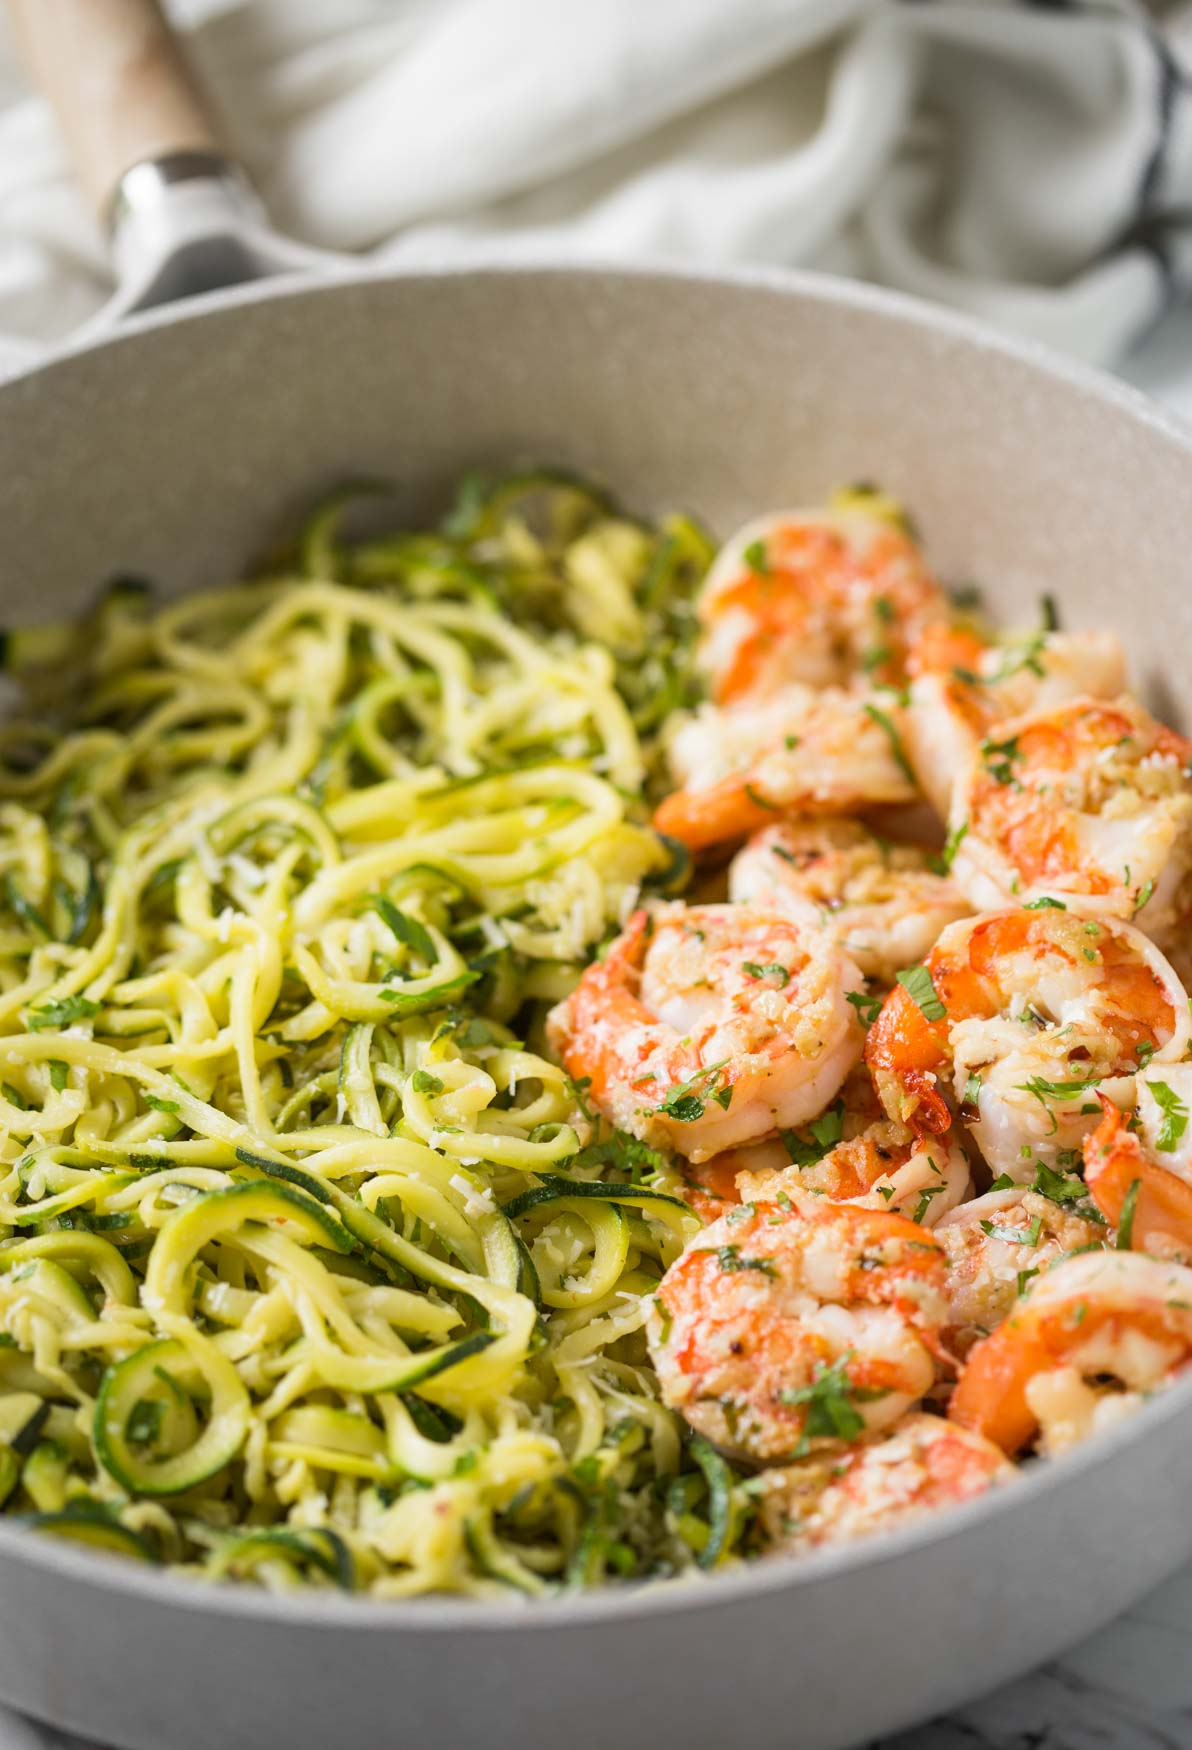 Shrimps and zucchini noodles cooked in fresh garlic and lemon juice and topped with finely chopped fresh herbs